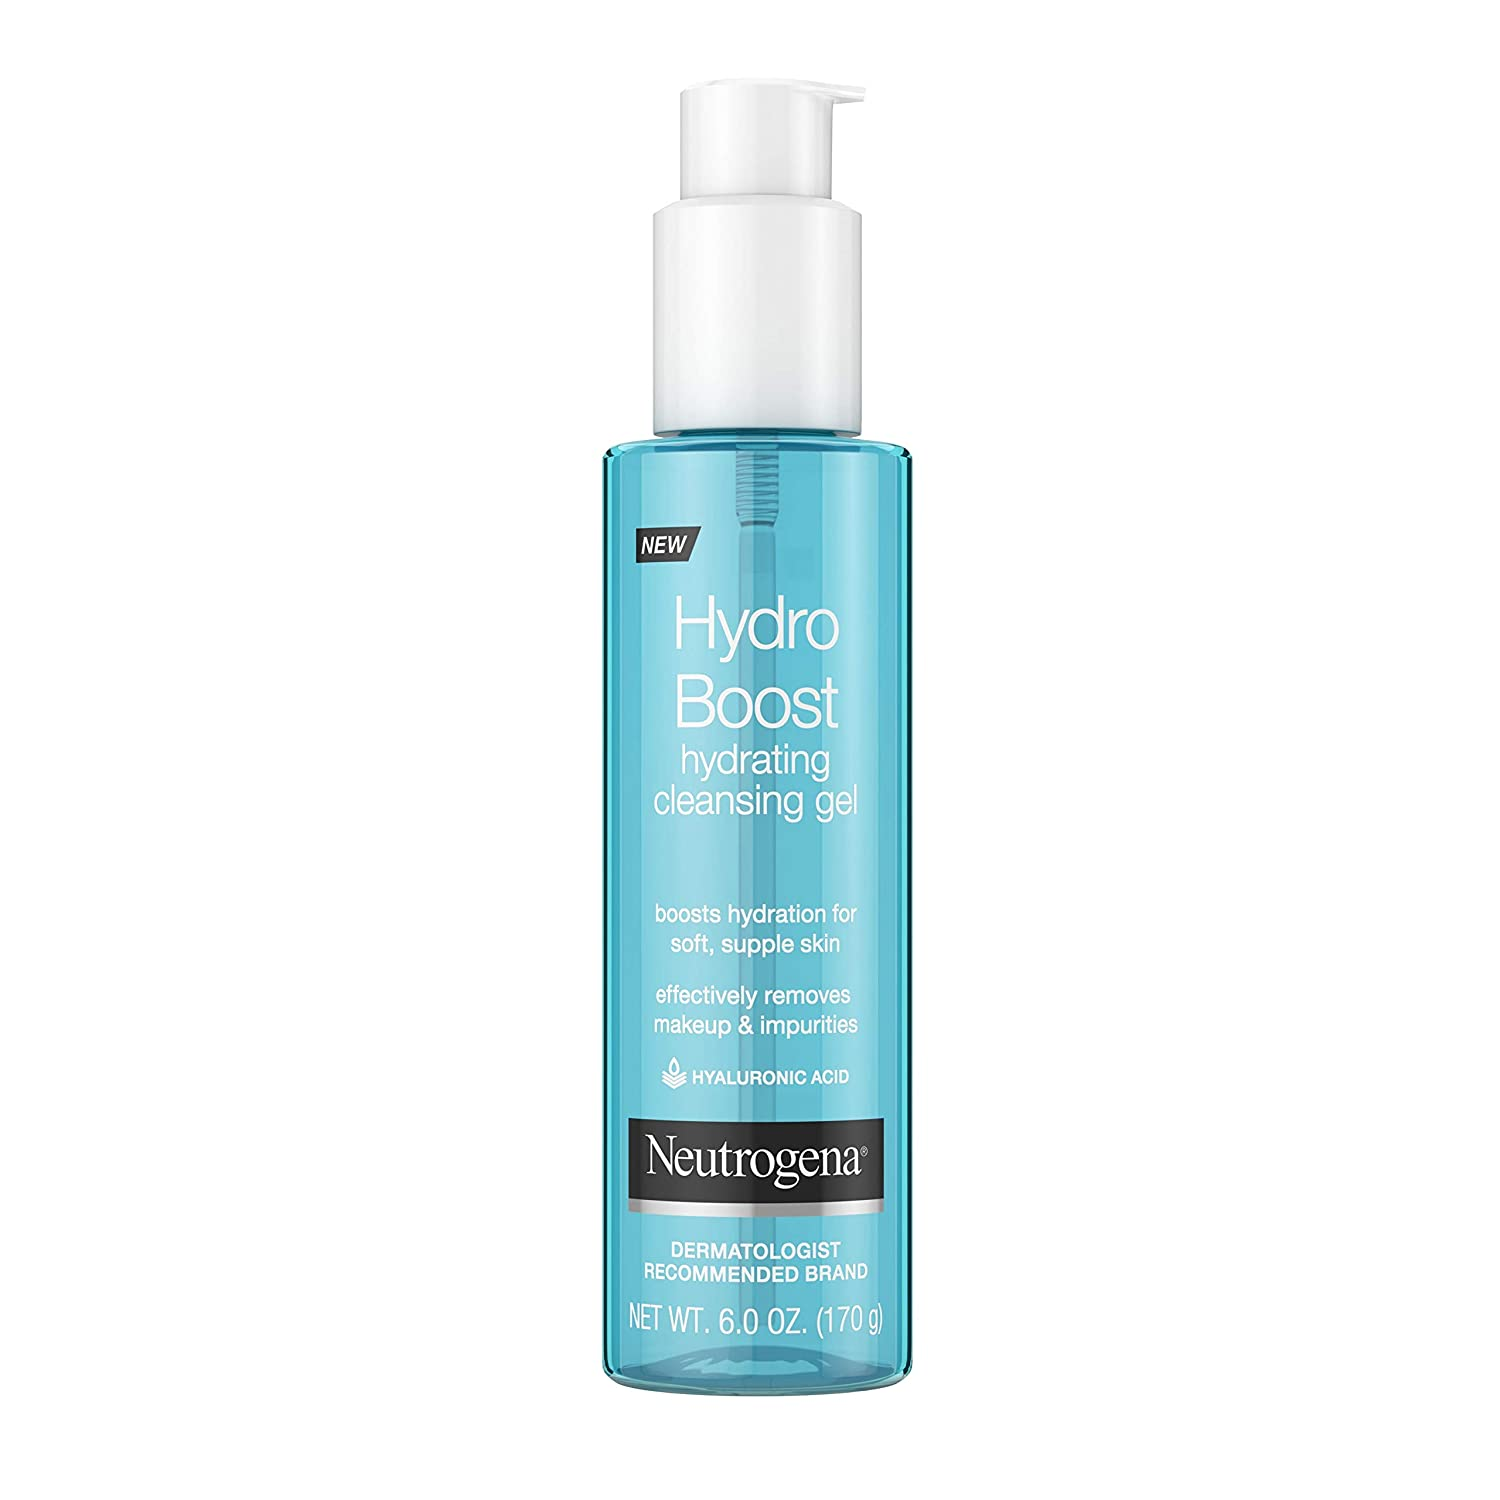 Neutrogena Hydro Boost Lightweight Hydrating Facial Cleansing Gel for Sensitive Skin, Gentle Face Wash & Makeup Remover with Hyaluronic Acid, Hypoallergenic & Non Comedogenic, 6 oz: Beauty